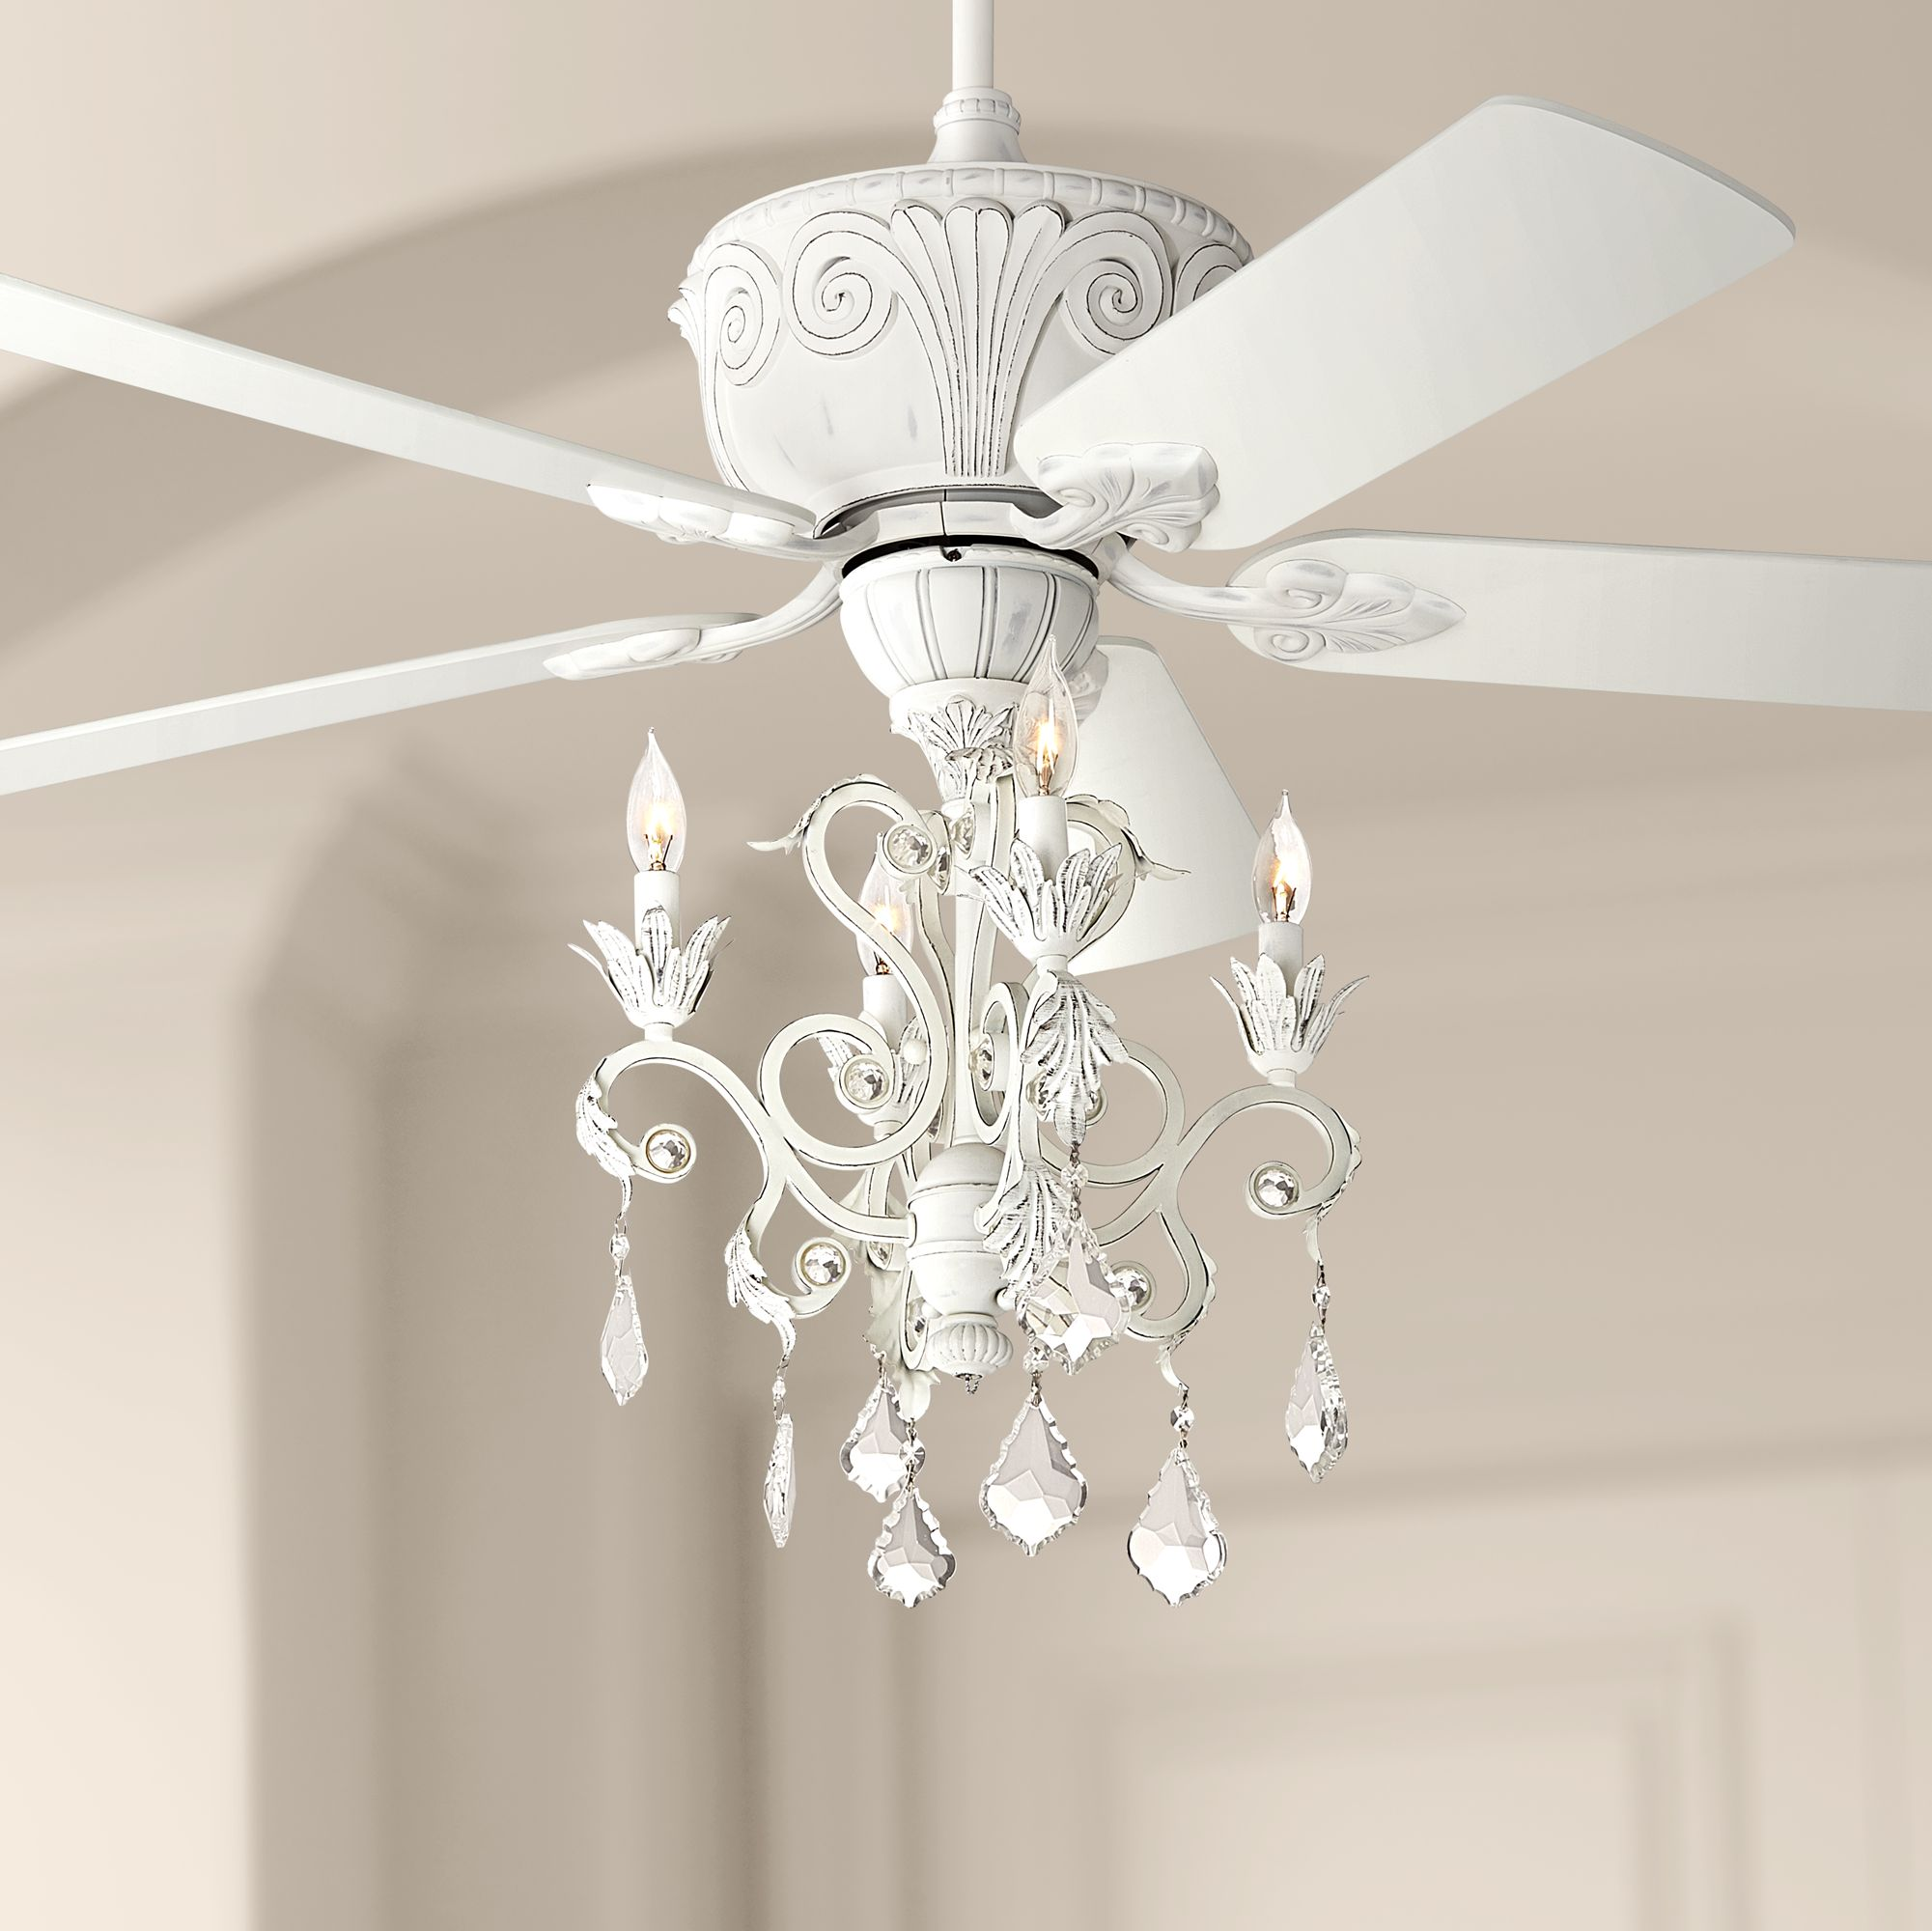 Ikea Fyndig Kitchen Reviews ~ Casa deville rubbed white chandelier ceiling fan 87534 45518 4g156